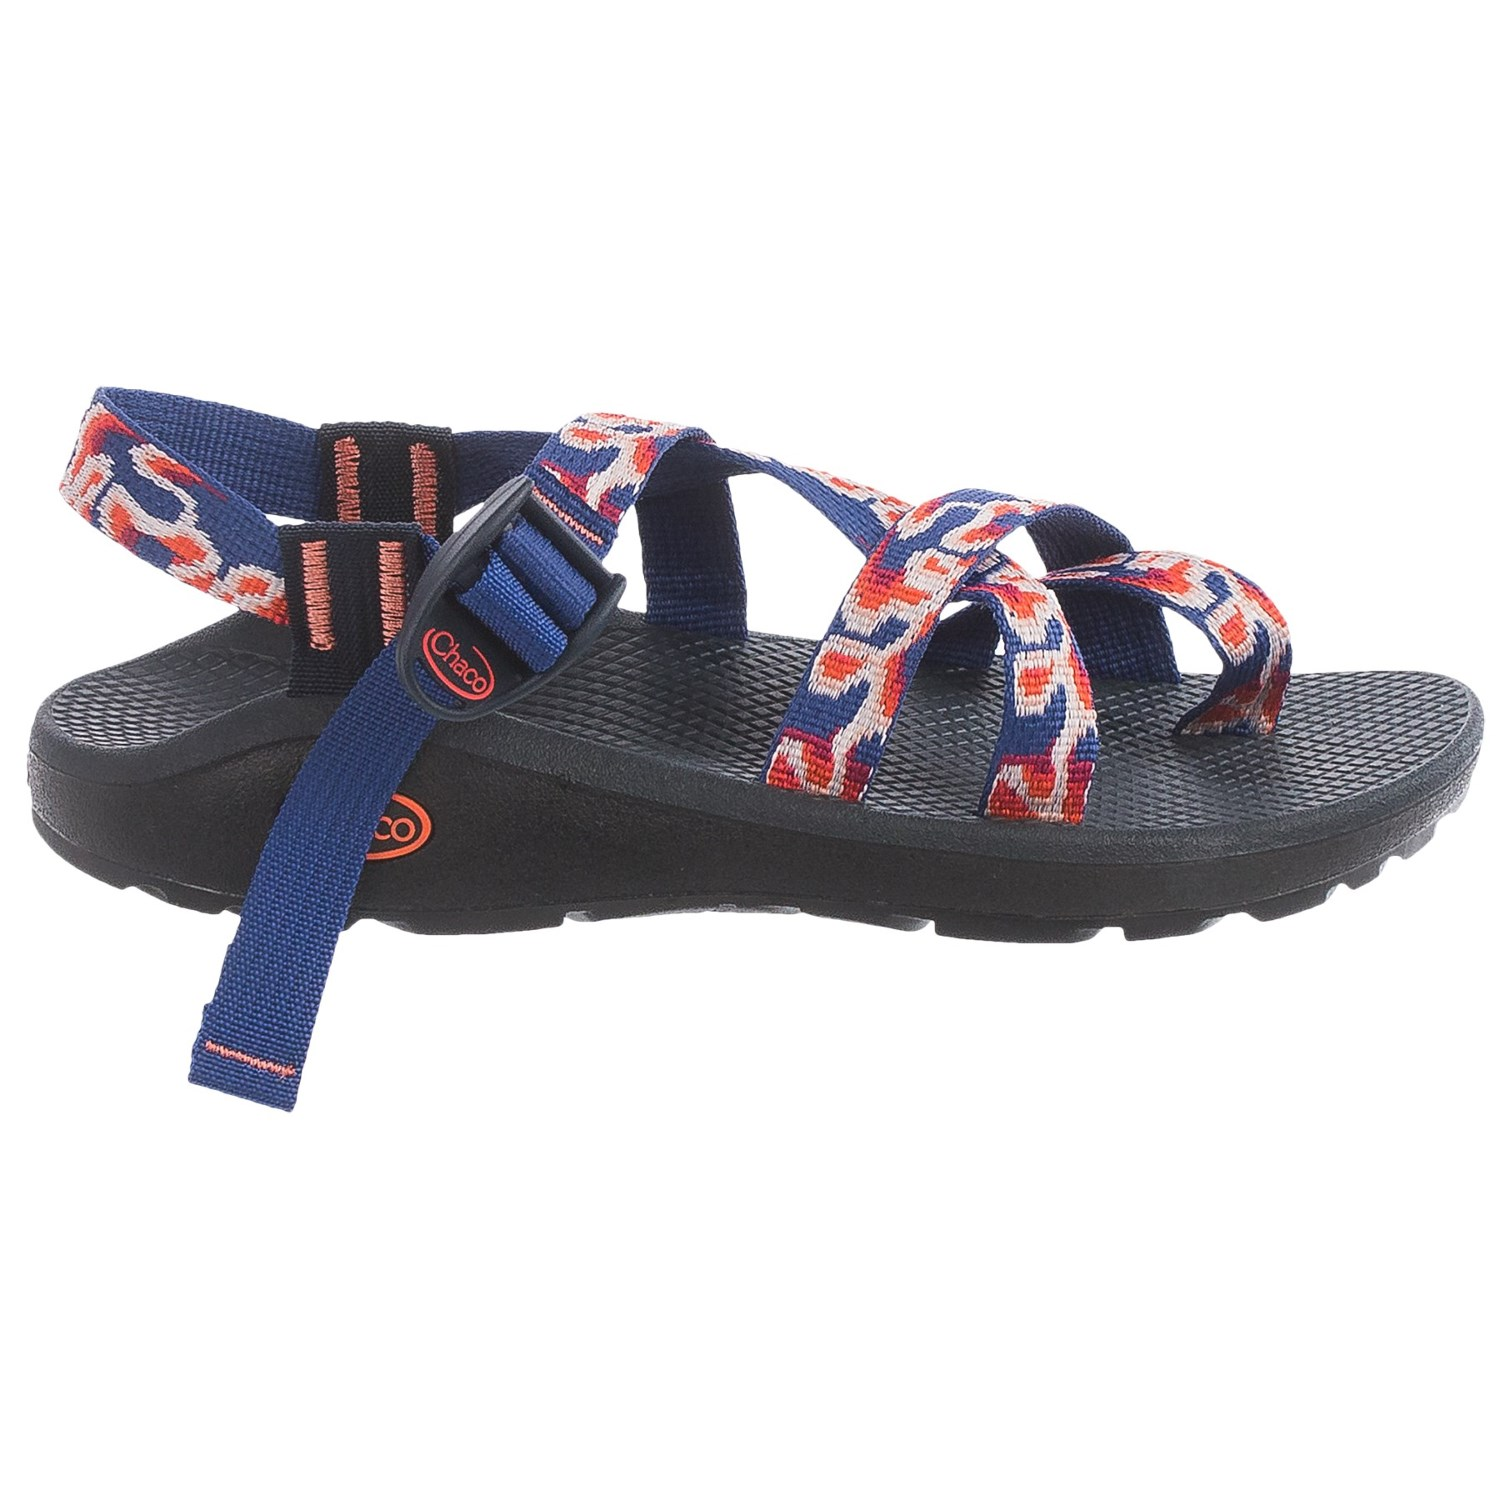 787f24d0ba70 Chaco Z Cloud 2 Sport Sandals (For Women) - Save 42%